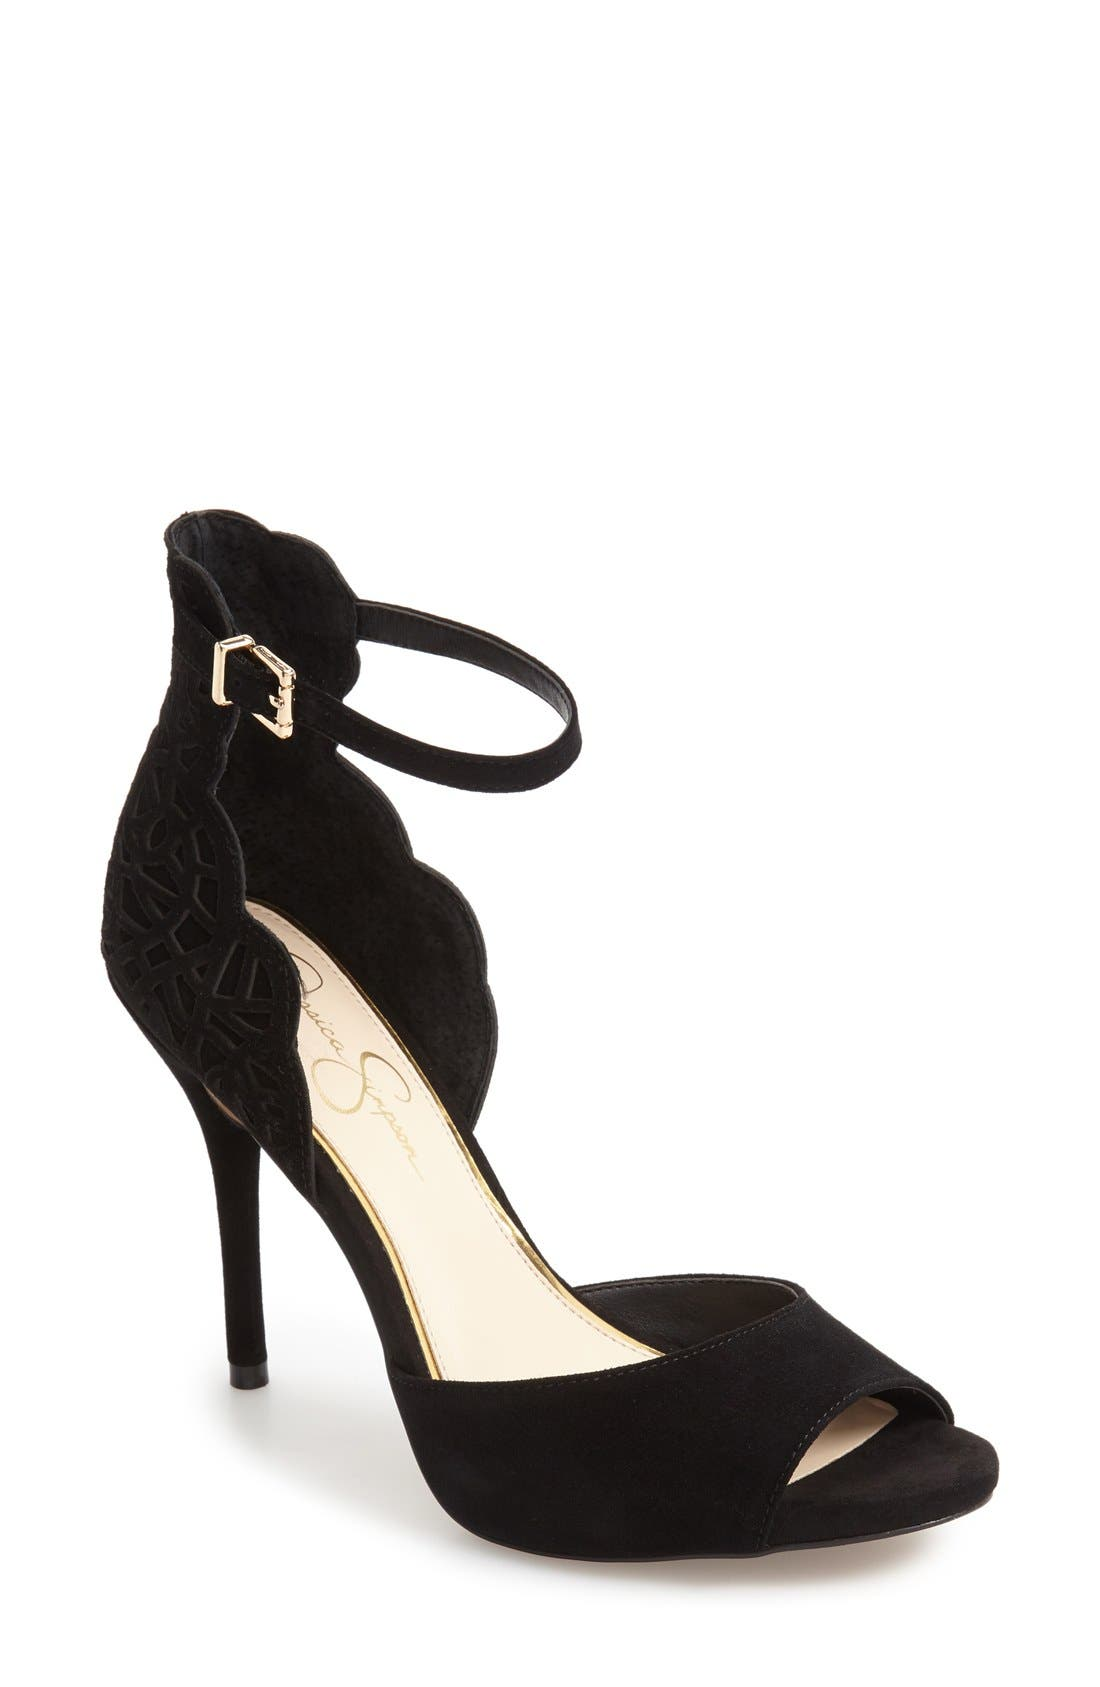 JESSICA SIMPSON Bellona Ankle Strap Sandal